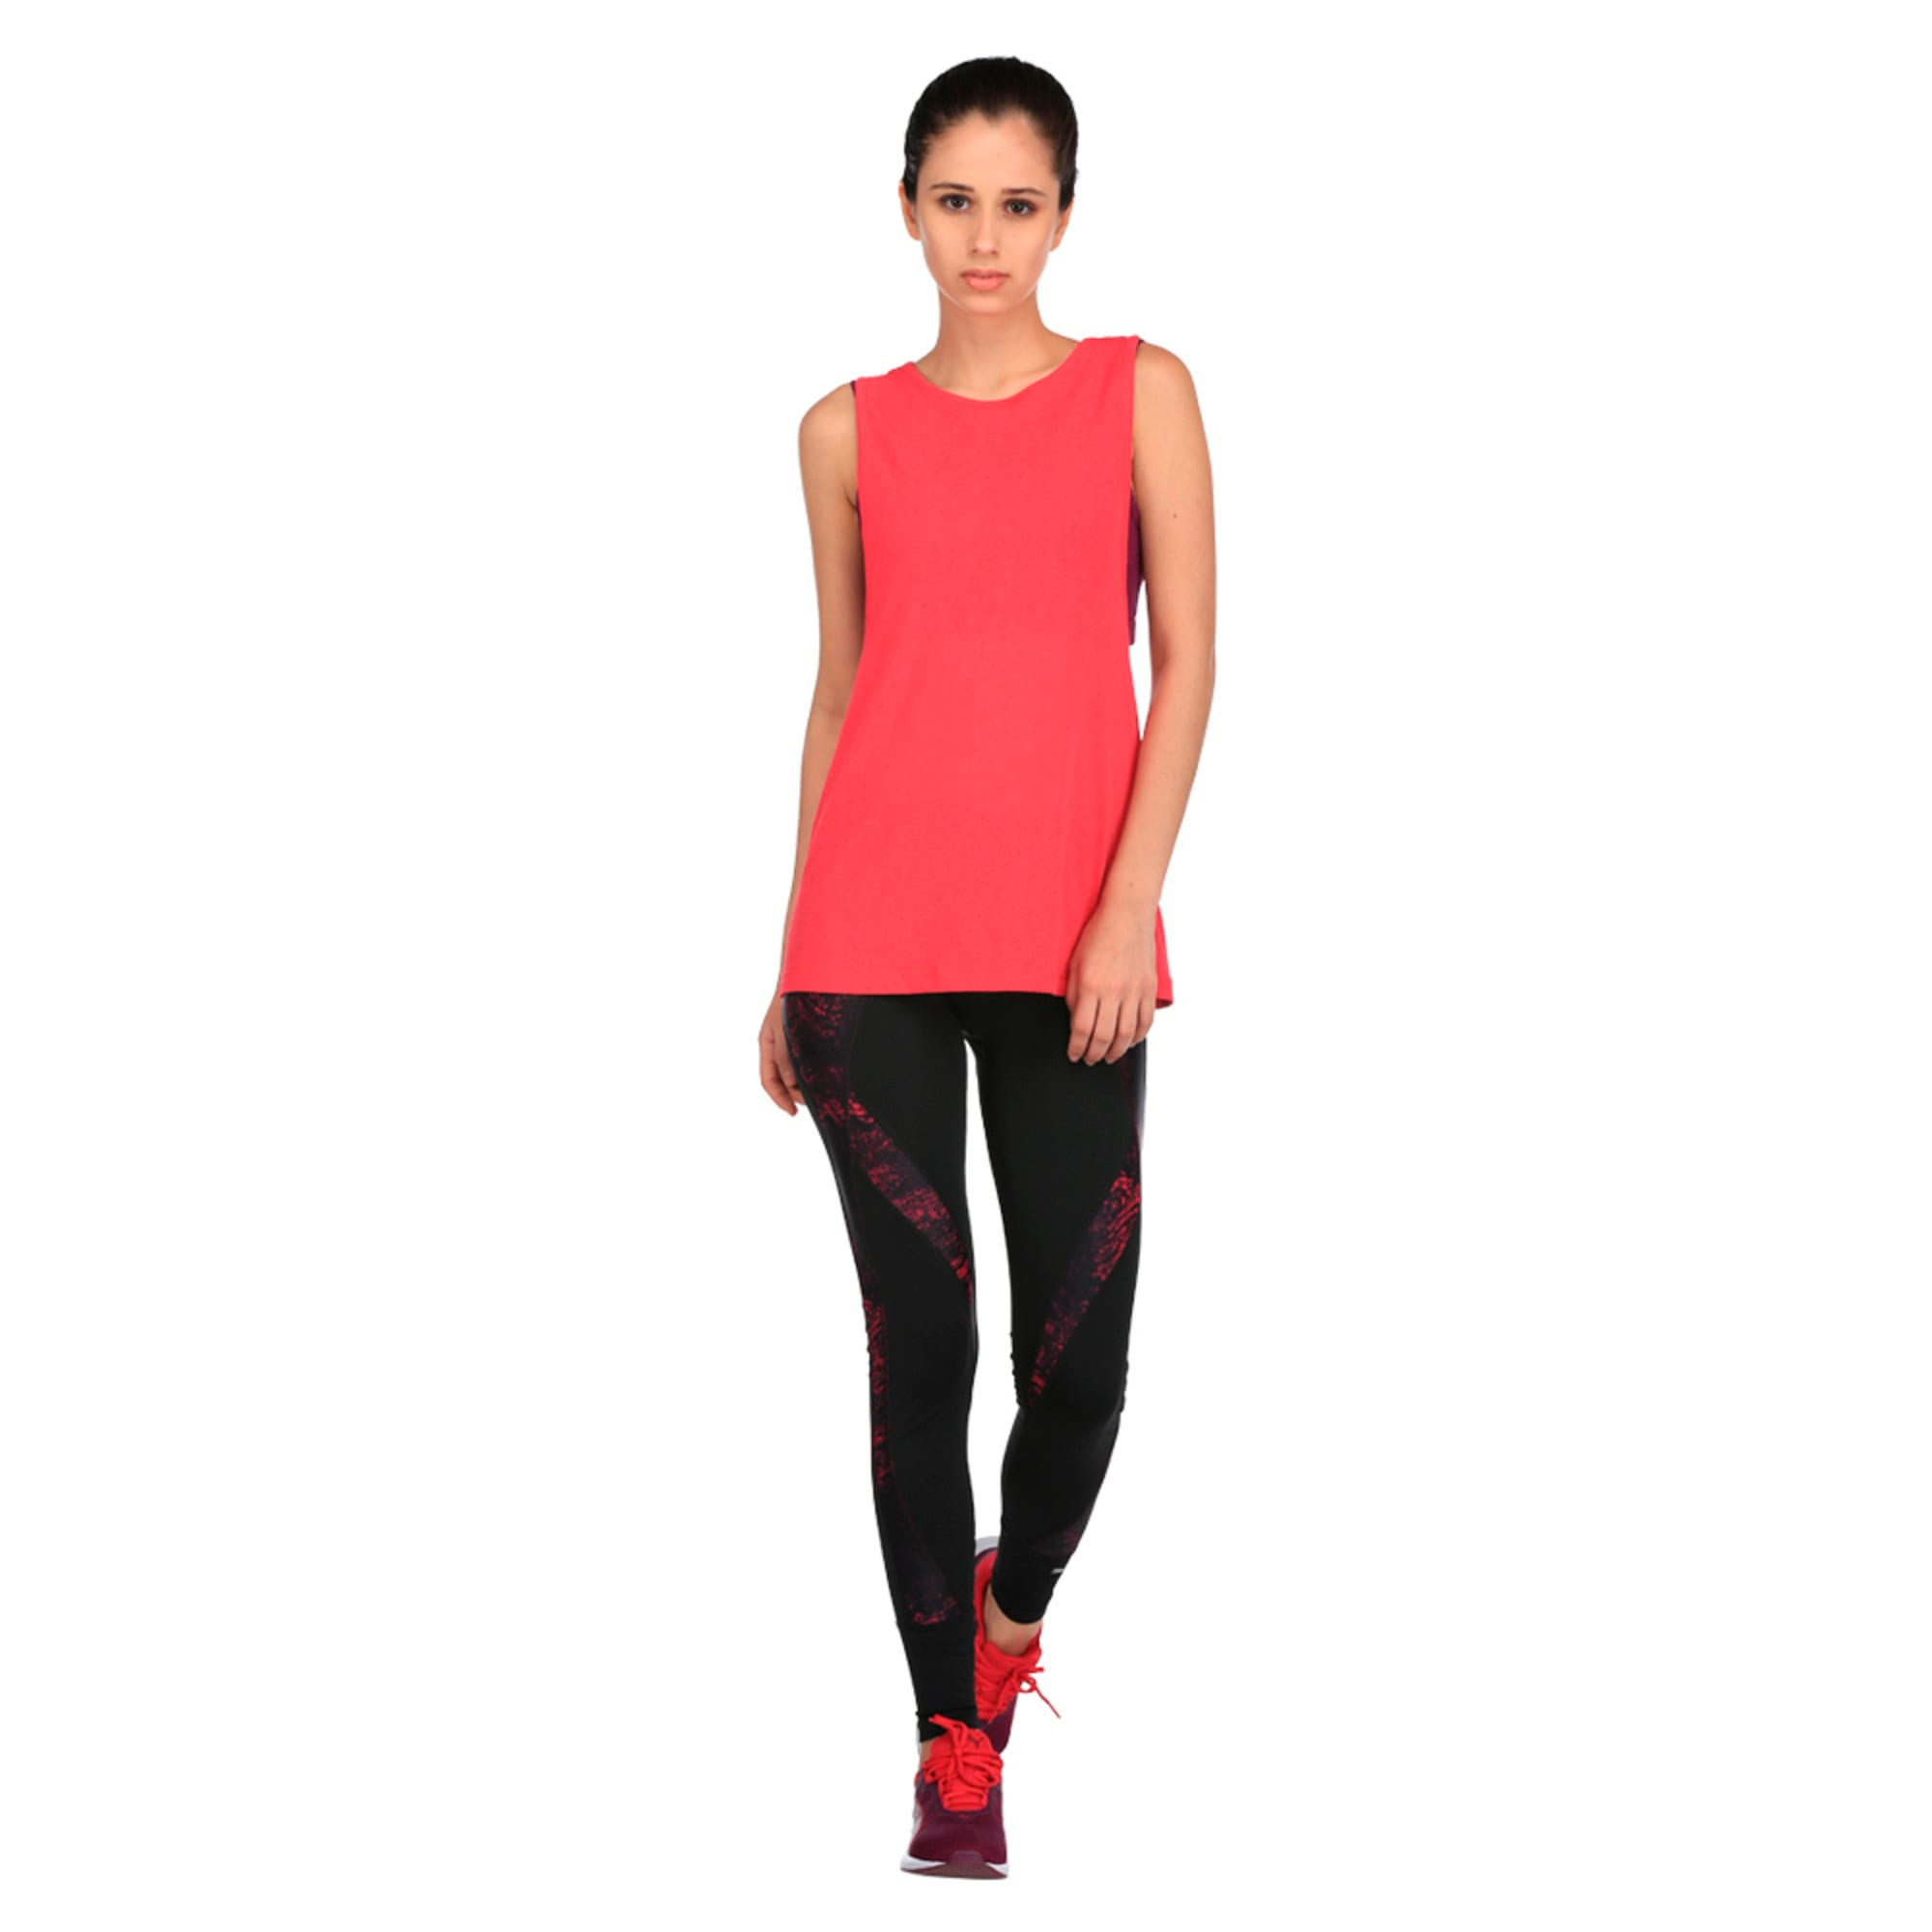 Thumbnail 3 of Active Training Women's Layer Tank Top, Love Potion-Oxidized prt, medium-IND